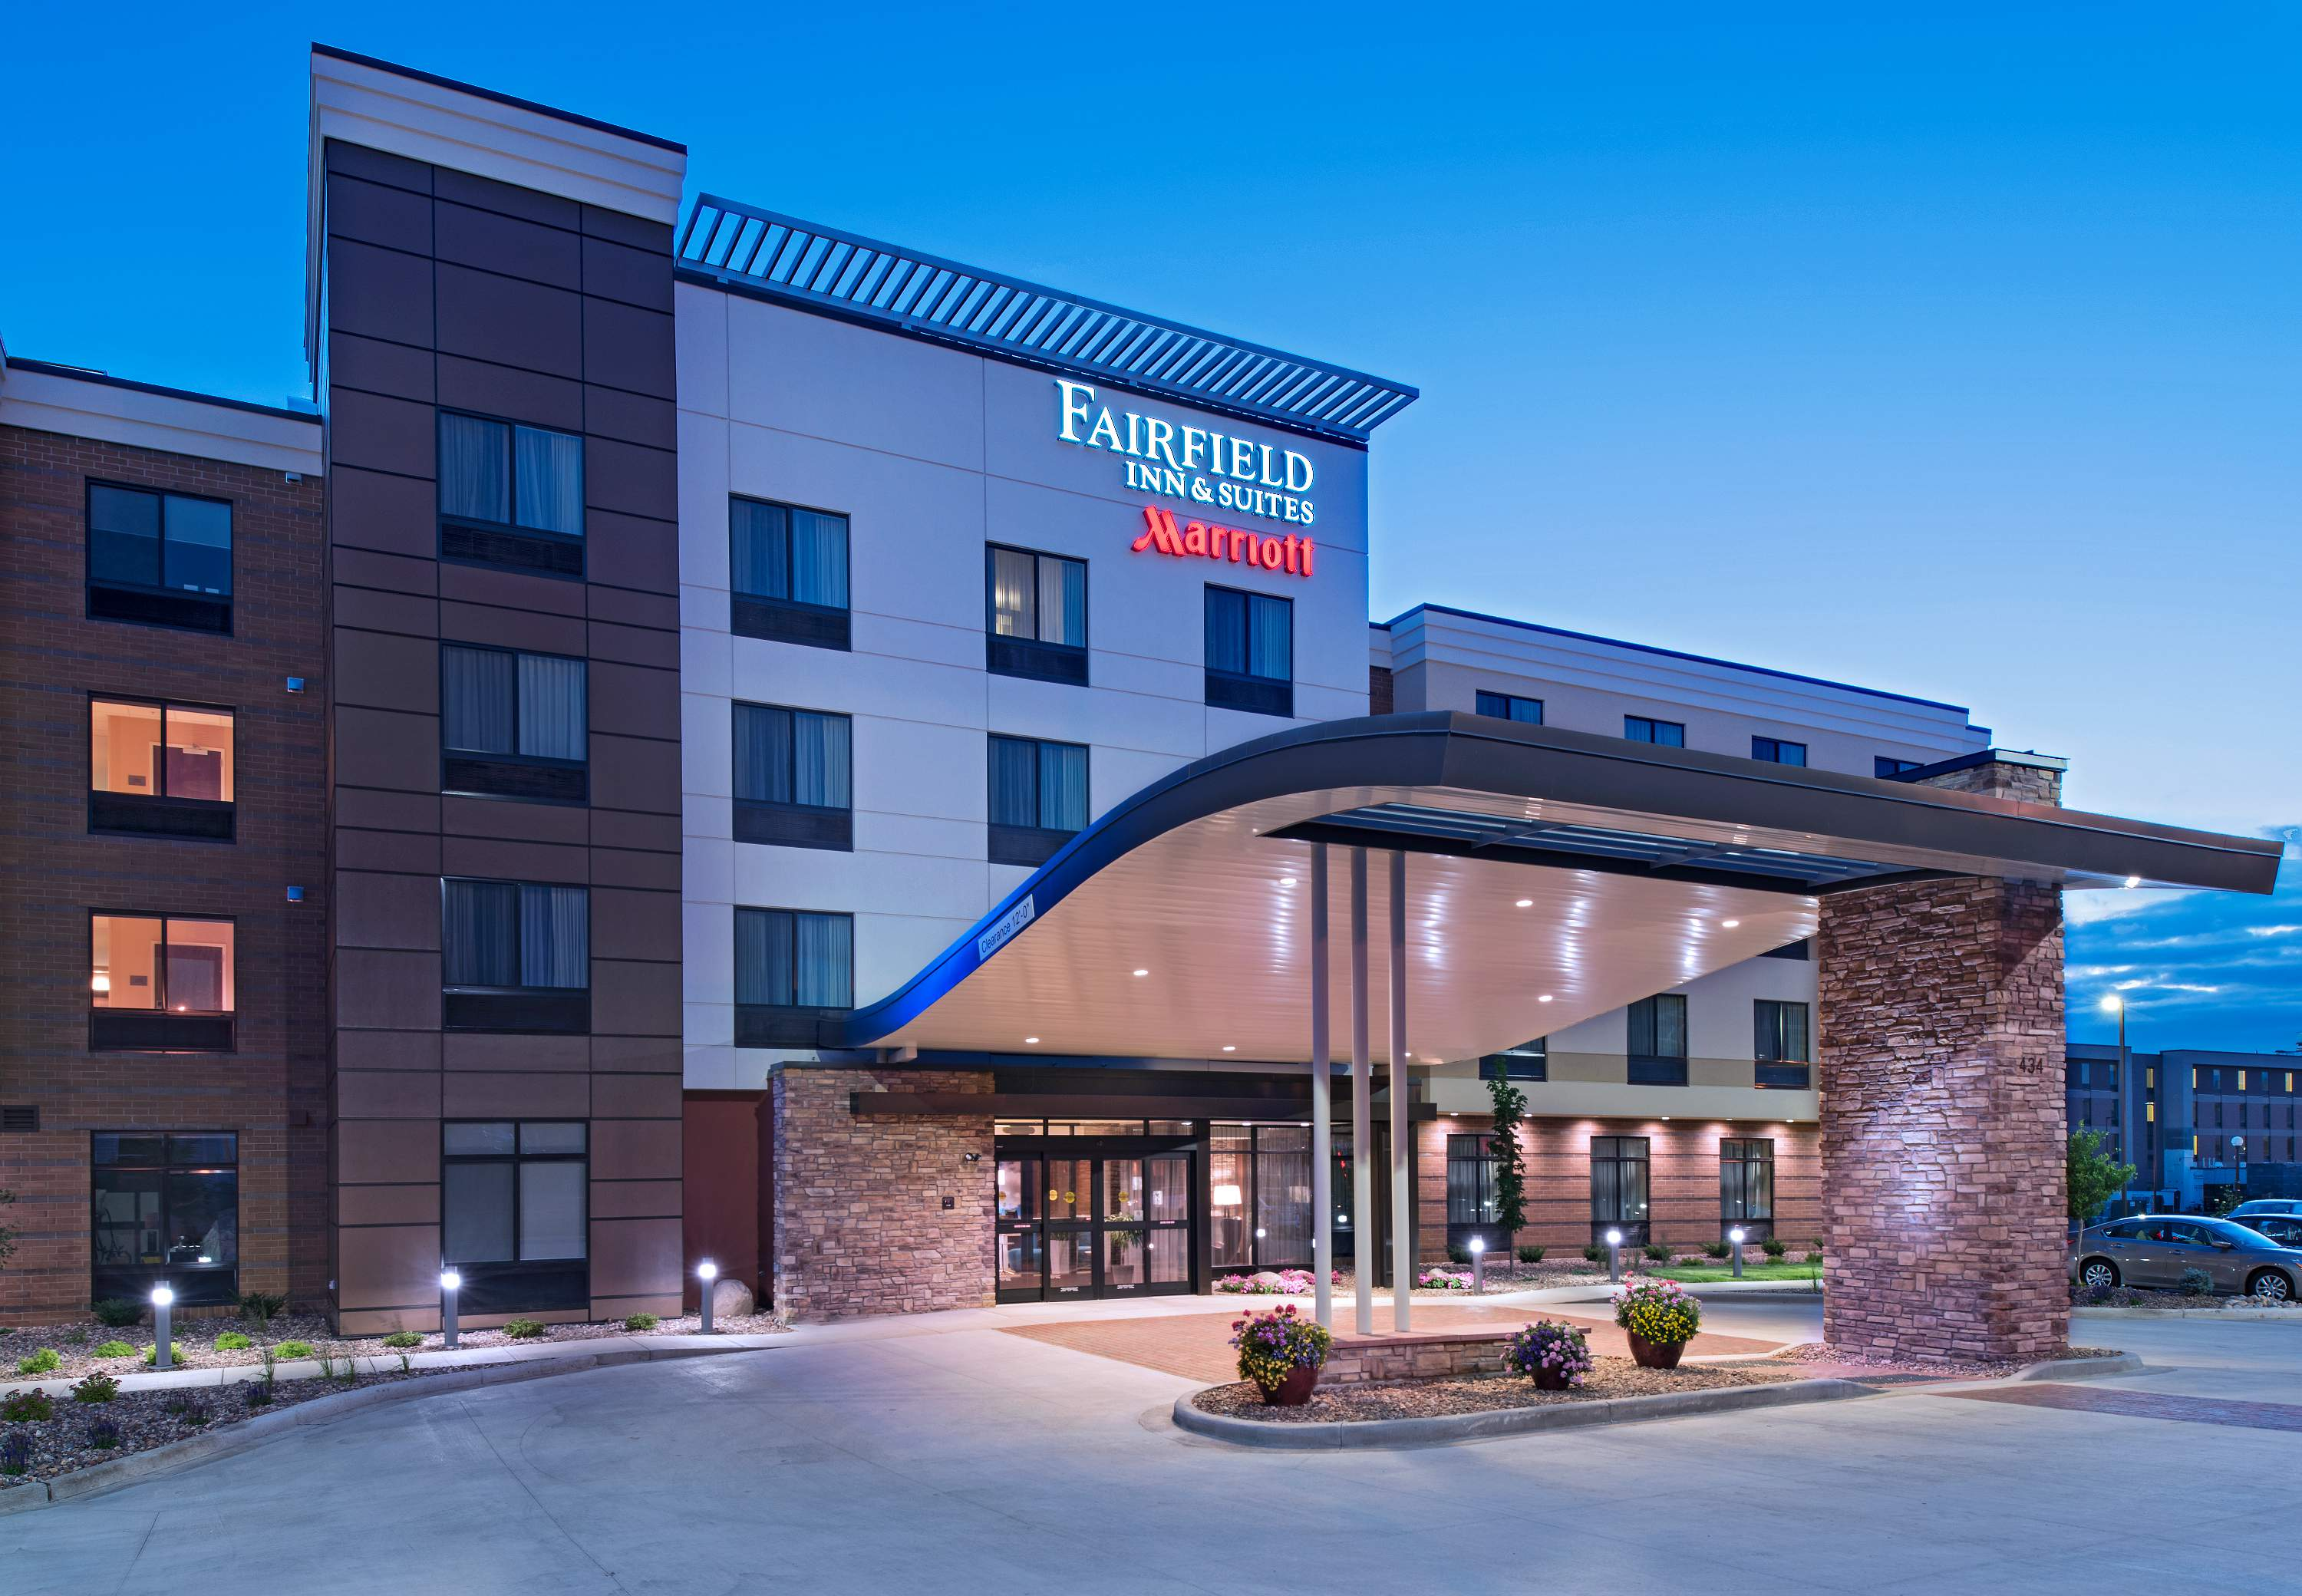 Fairfield Inn & Suites by Marriott La Crosse Downtown image 1